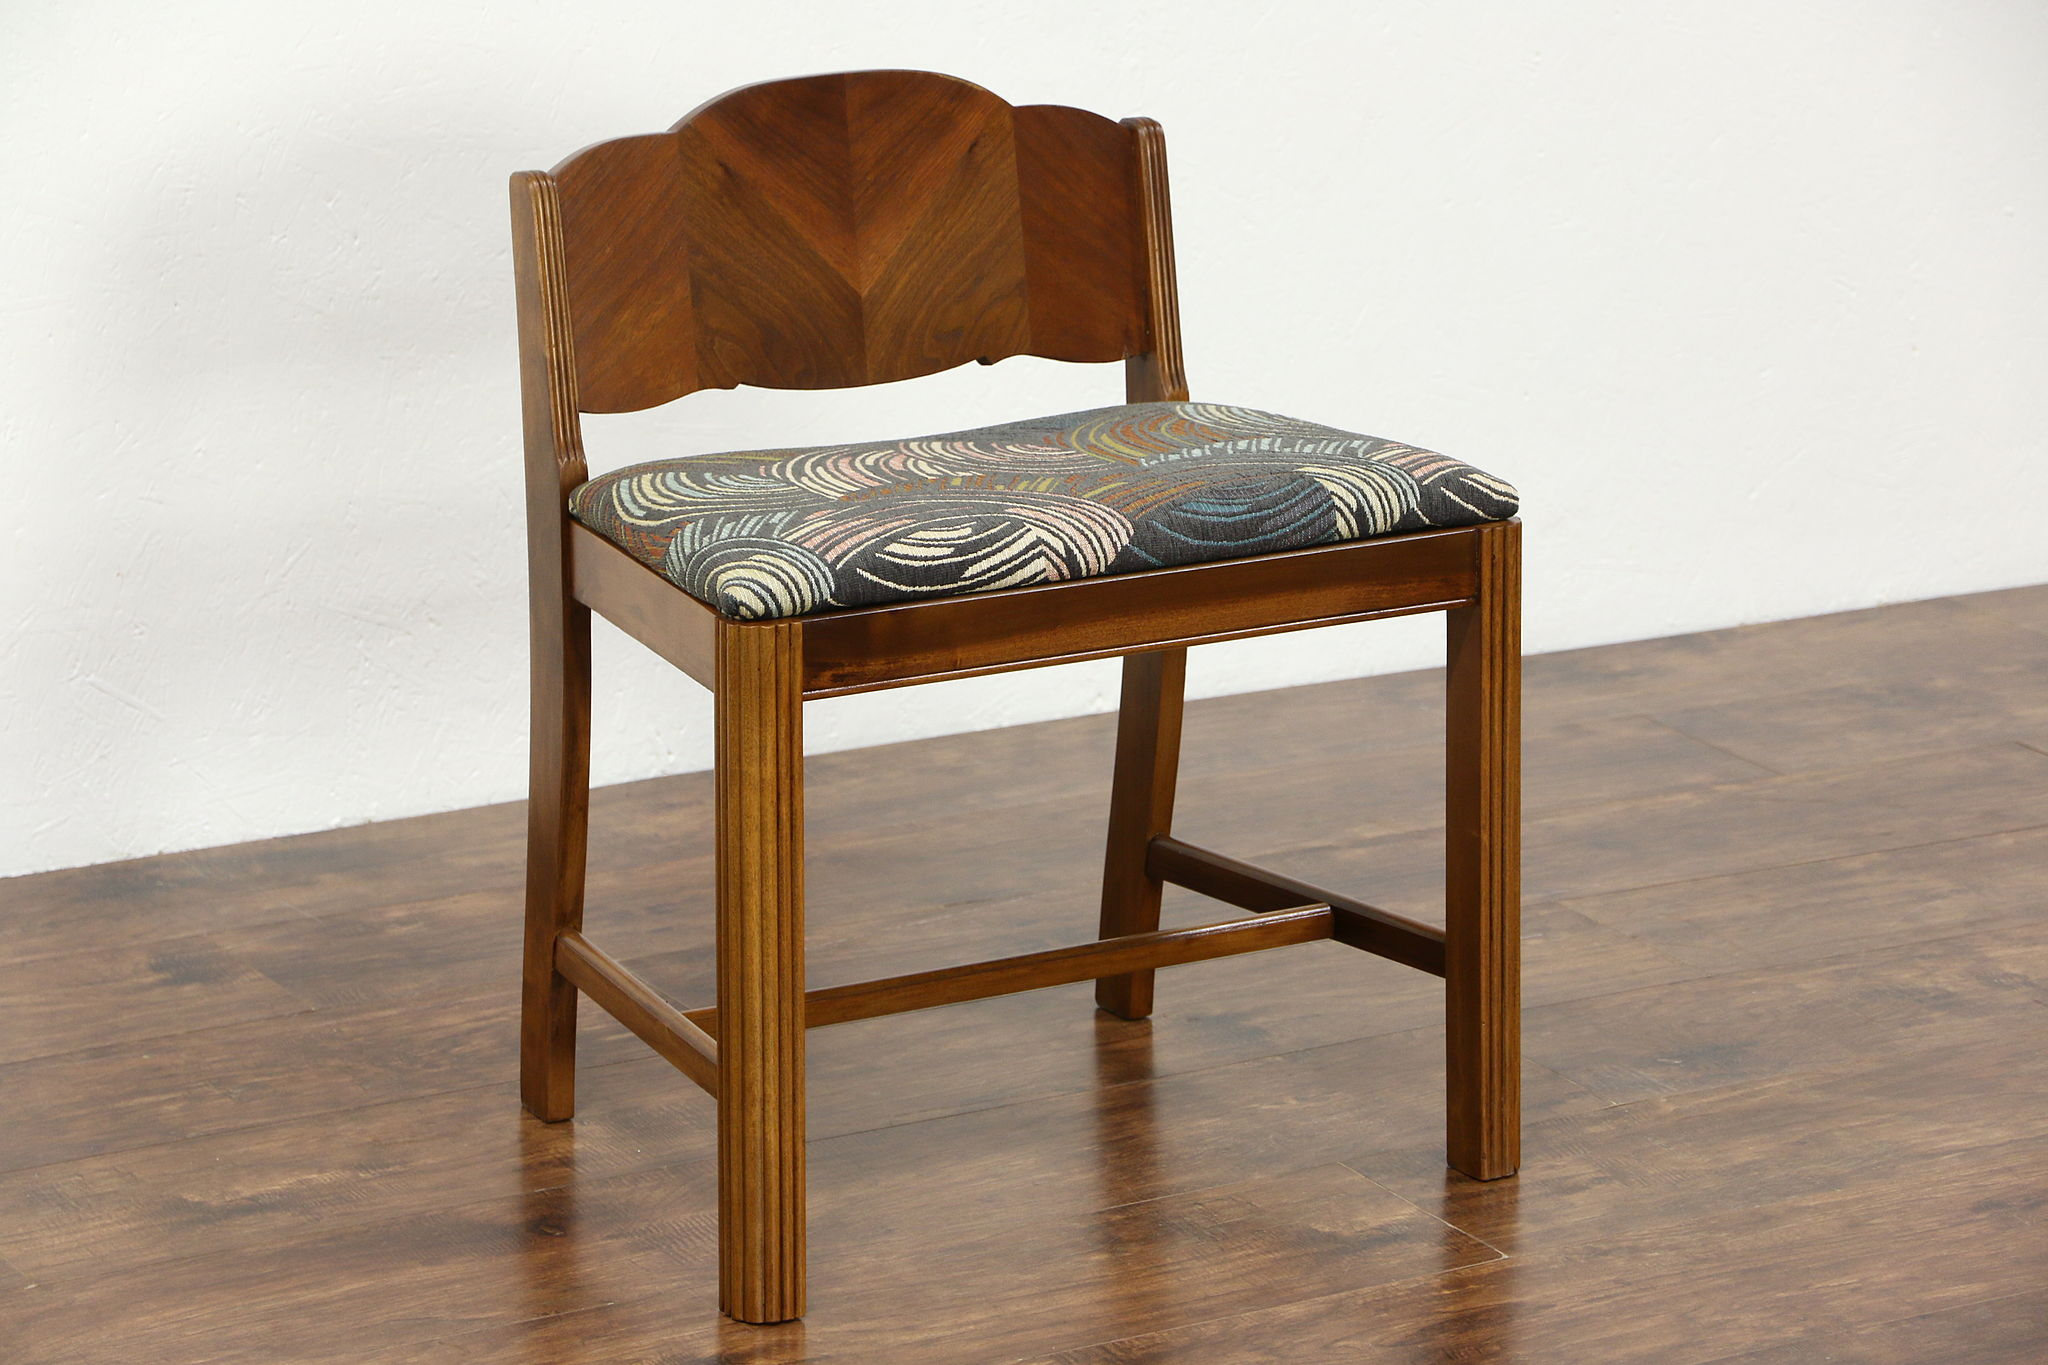 Sold Art Deco 1935 Vintage Bench Or Vanity Chair Newly Upholstered Harp Gallery Antiques Furniture